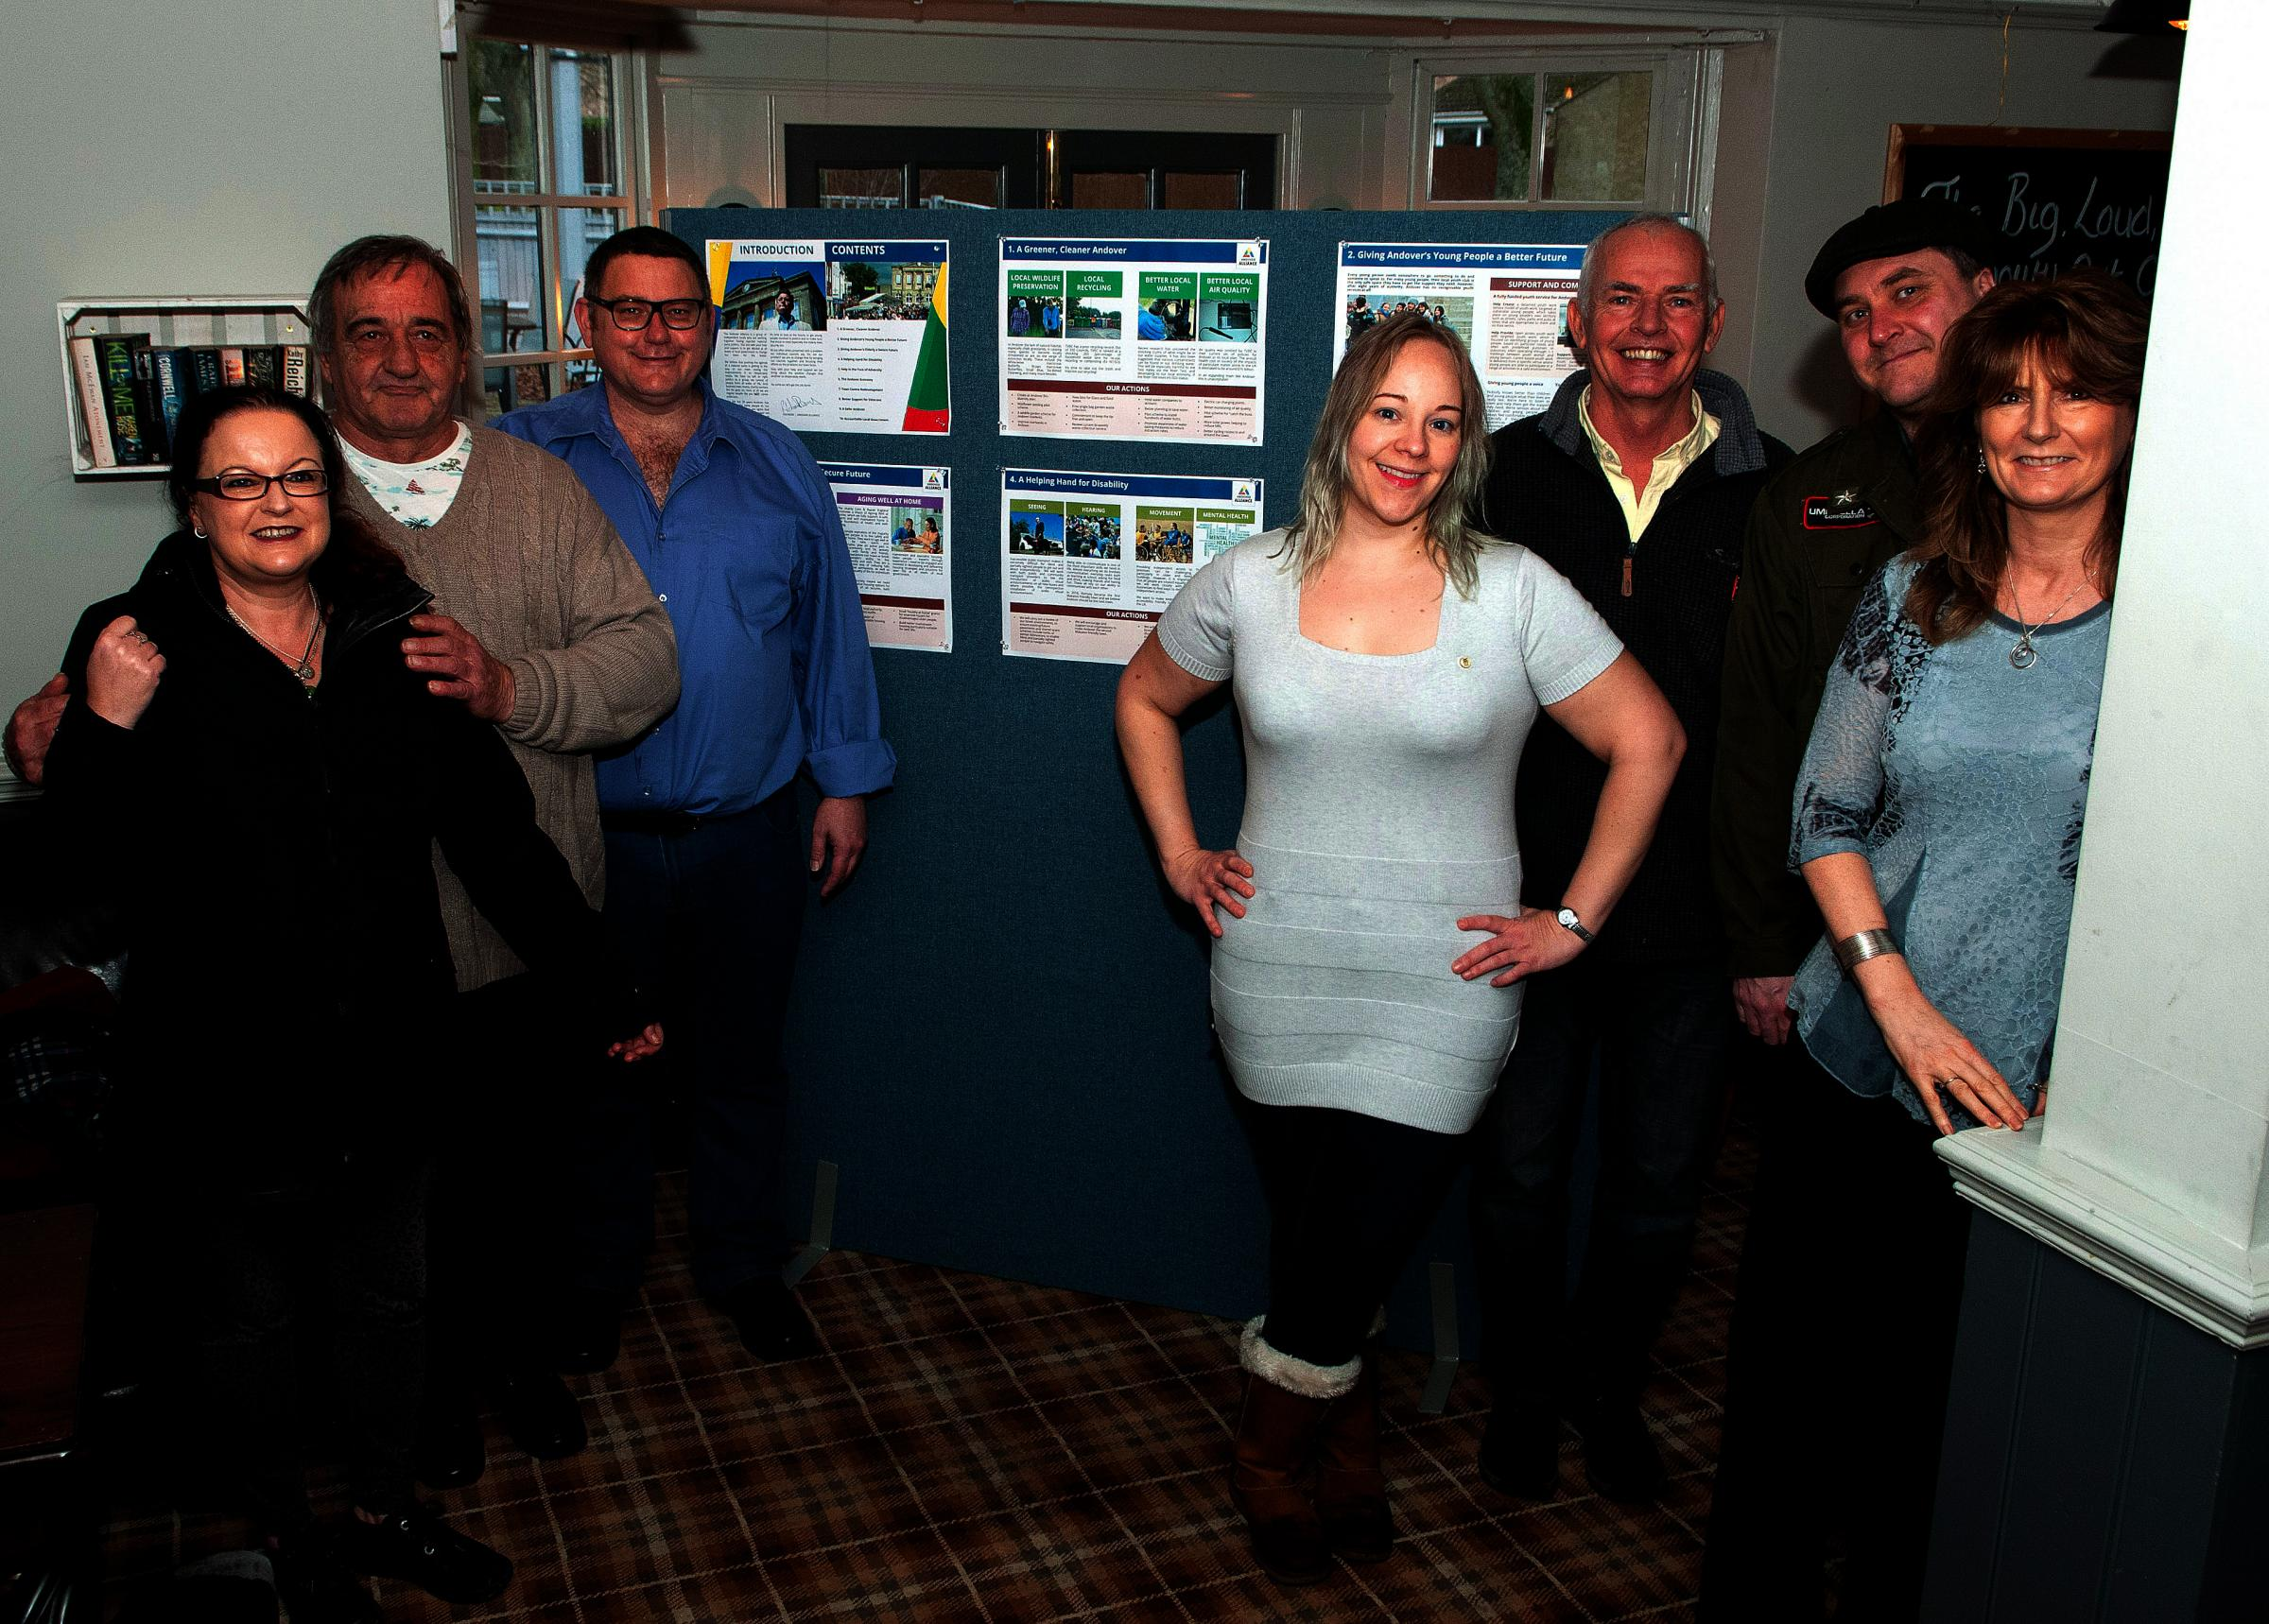 Members of the Andover Alliance at the launch of their manifesto. Image: Andy Brooks